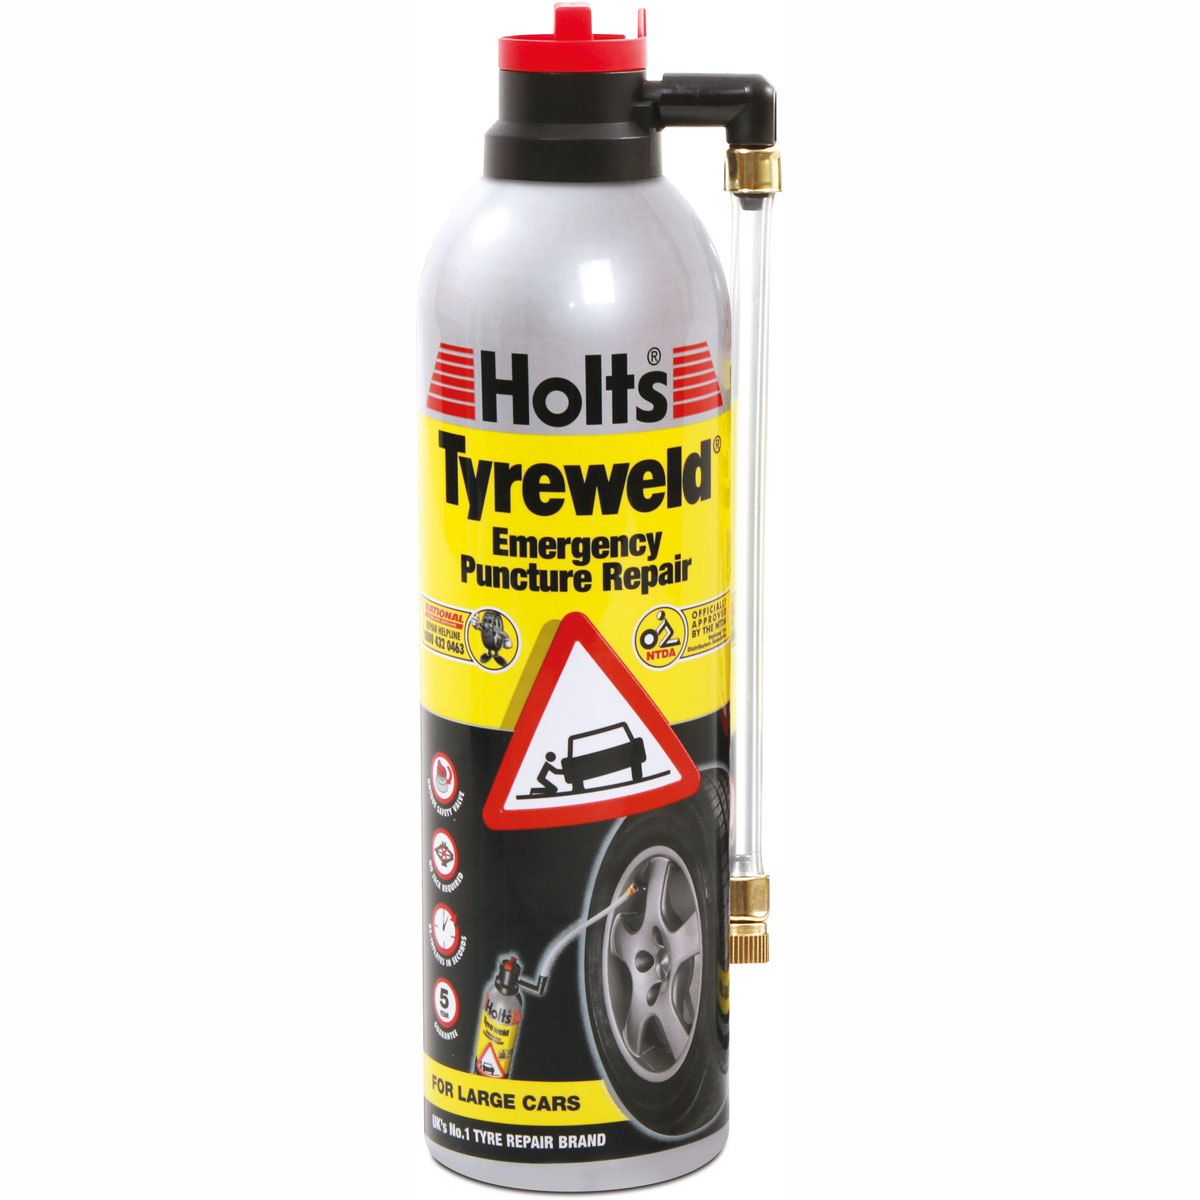 Holts Tyreweld Puncture Repair